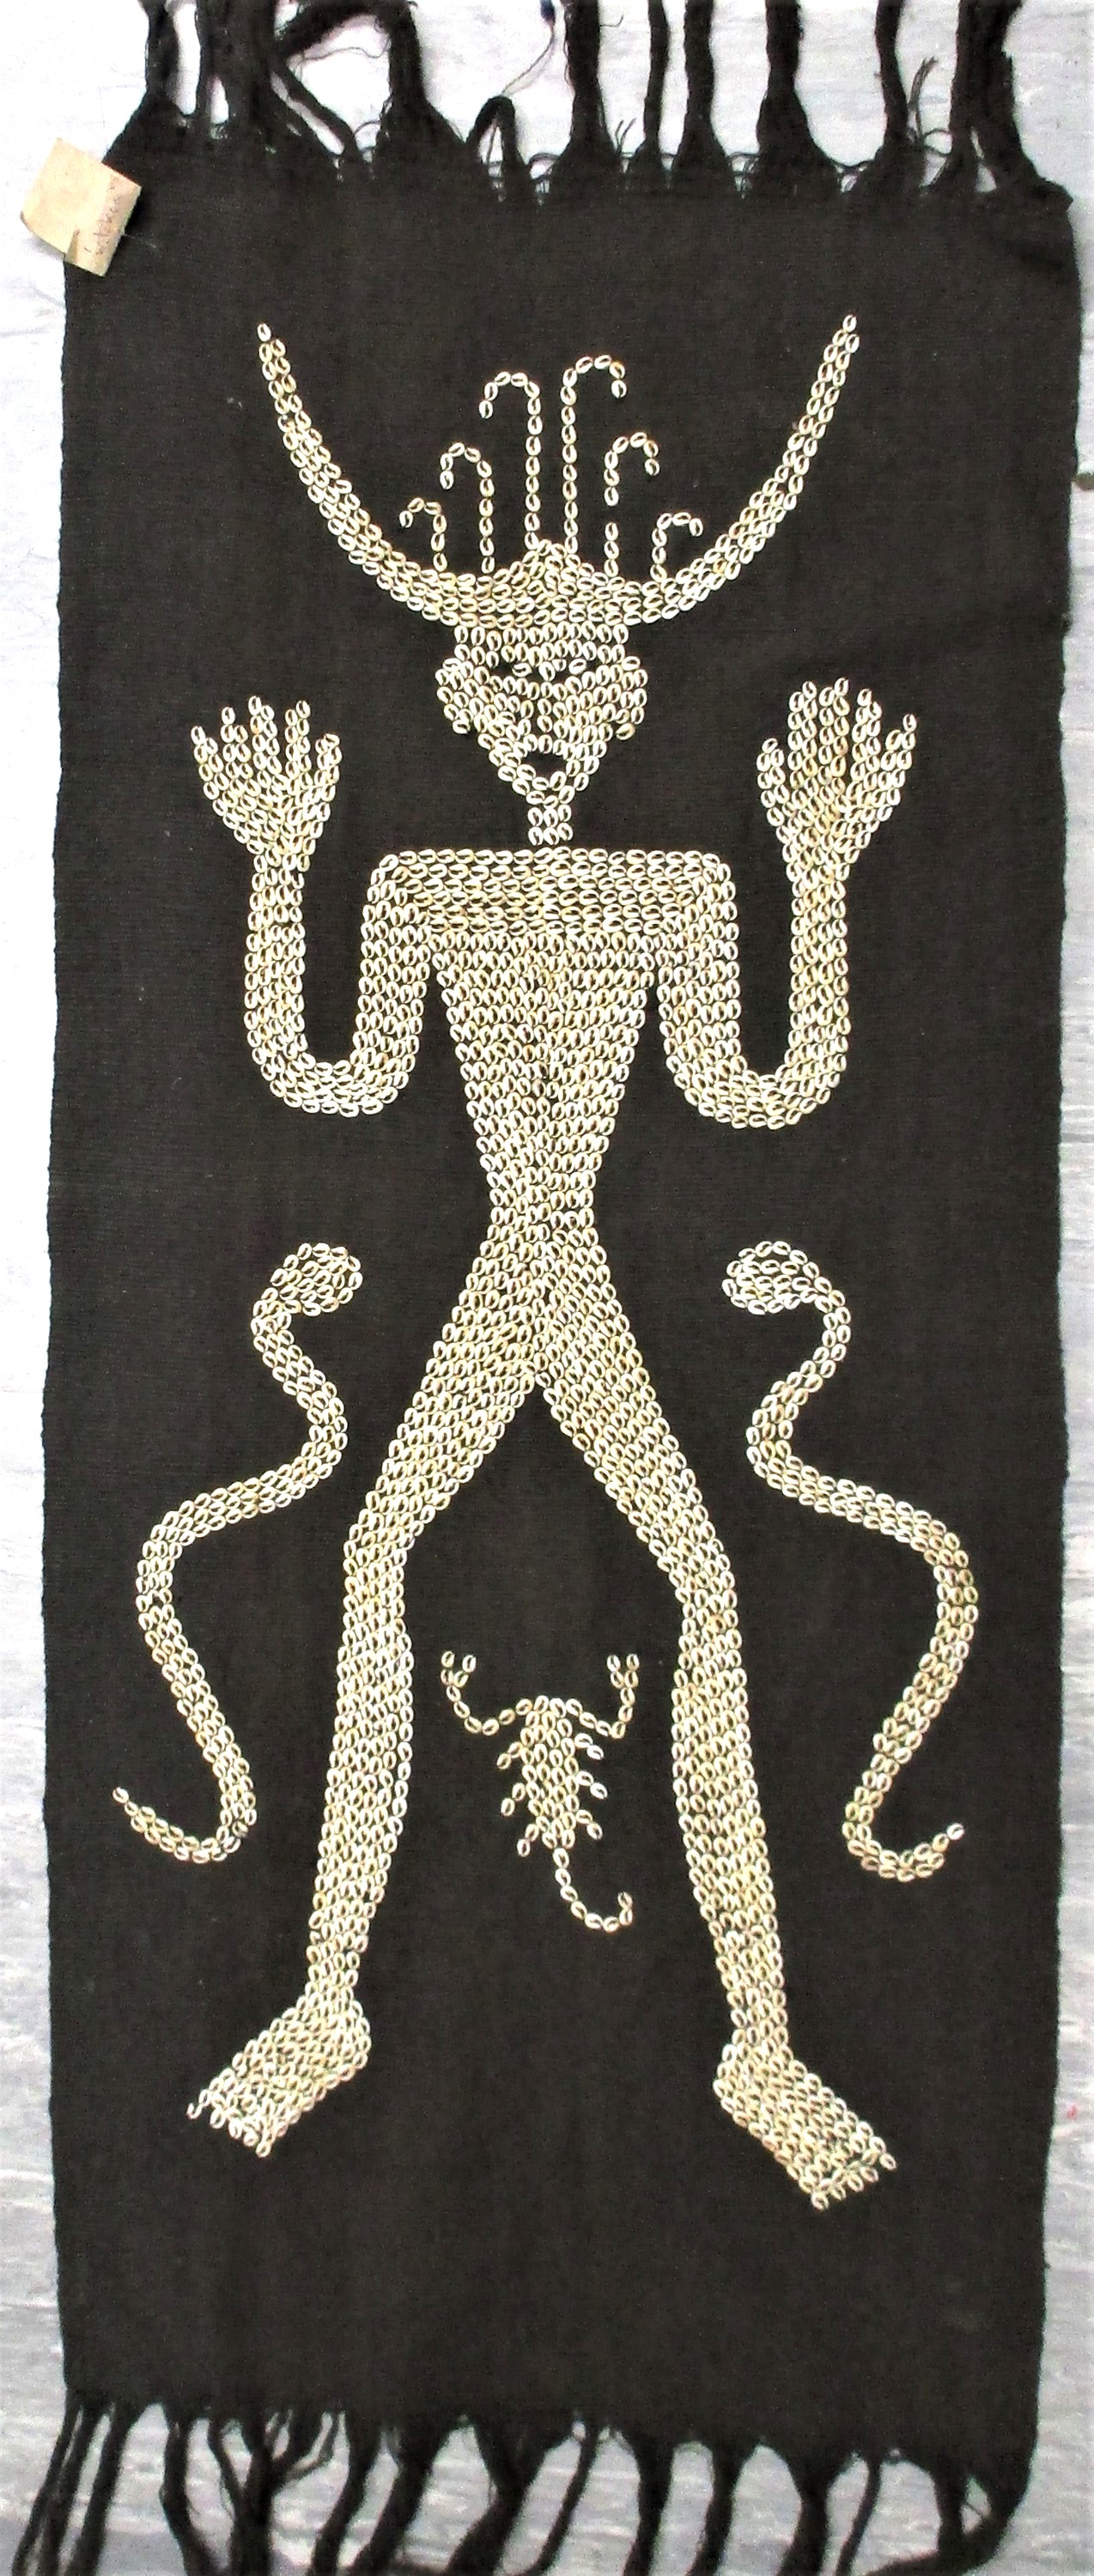 A ceremonial hanging, lau hada, from east Sumba . Raw cotton dyed with black indigo and